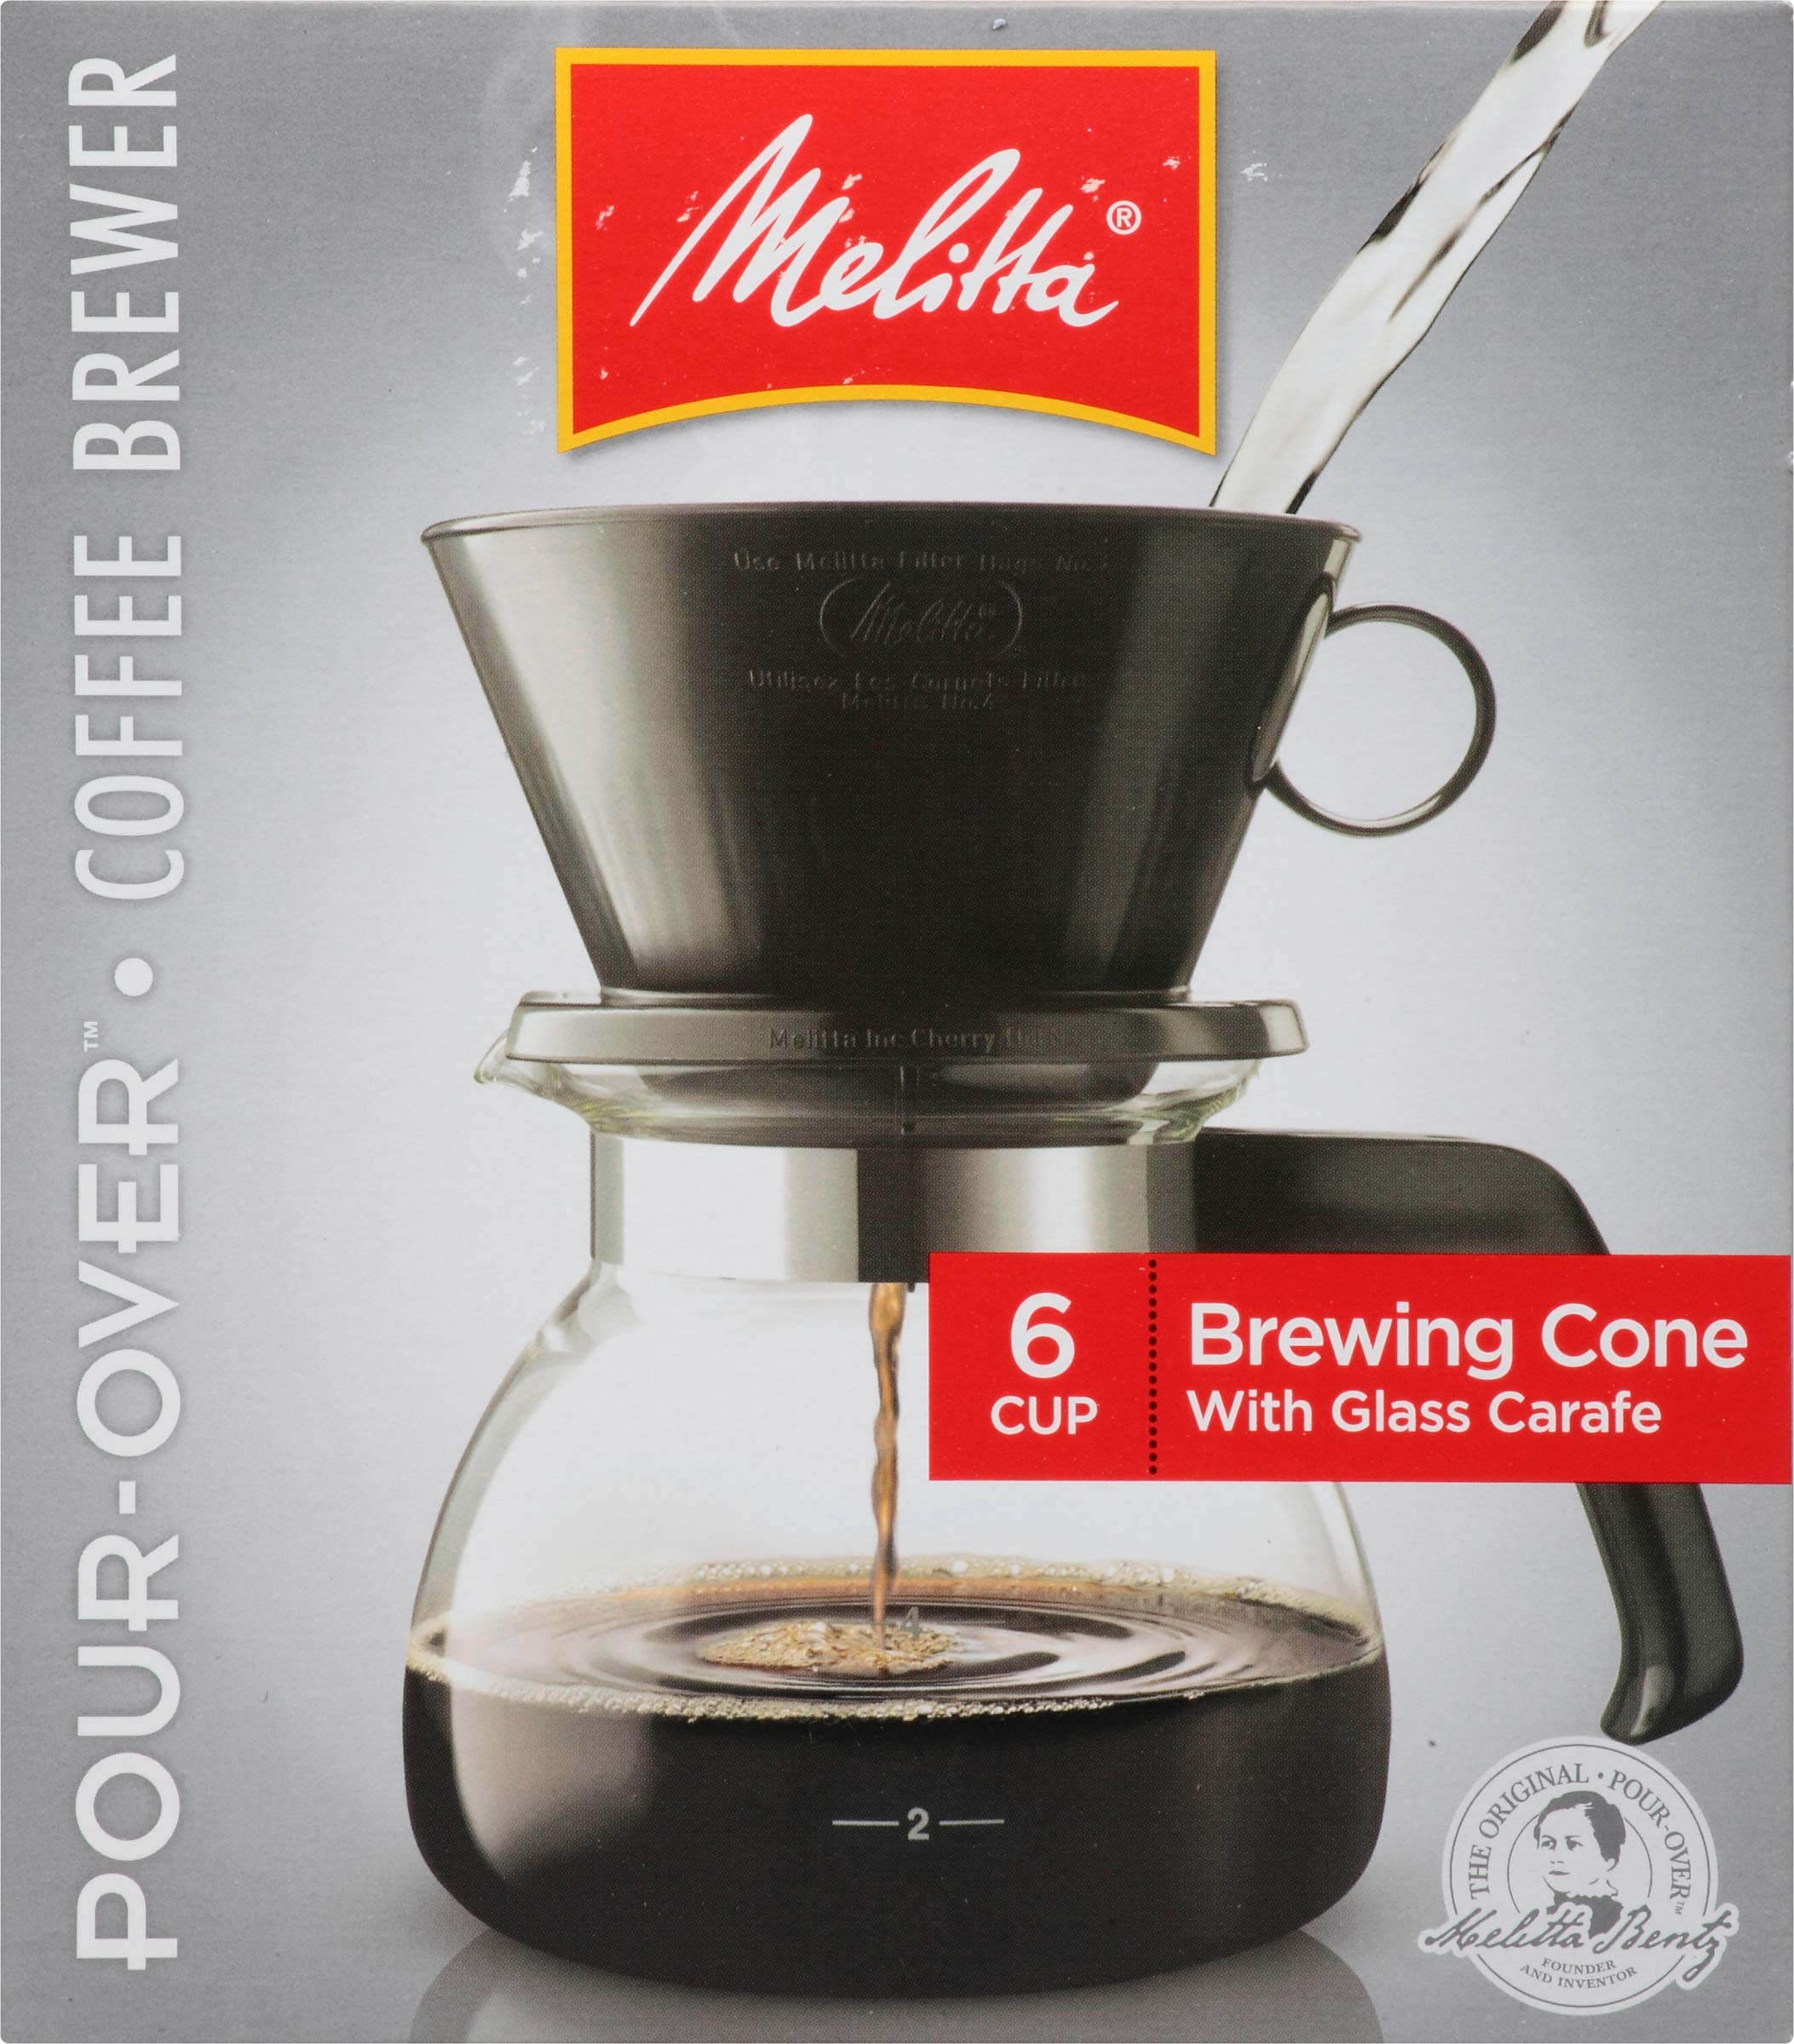 Melitta 6-Cup Pour-Over Coffee Brewer w/ Glass Carafe by Melitta